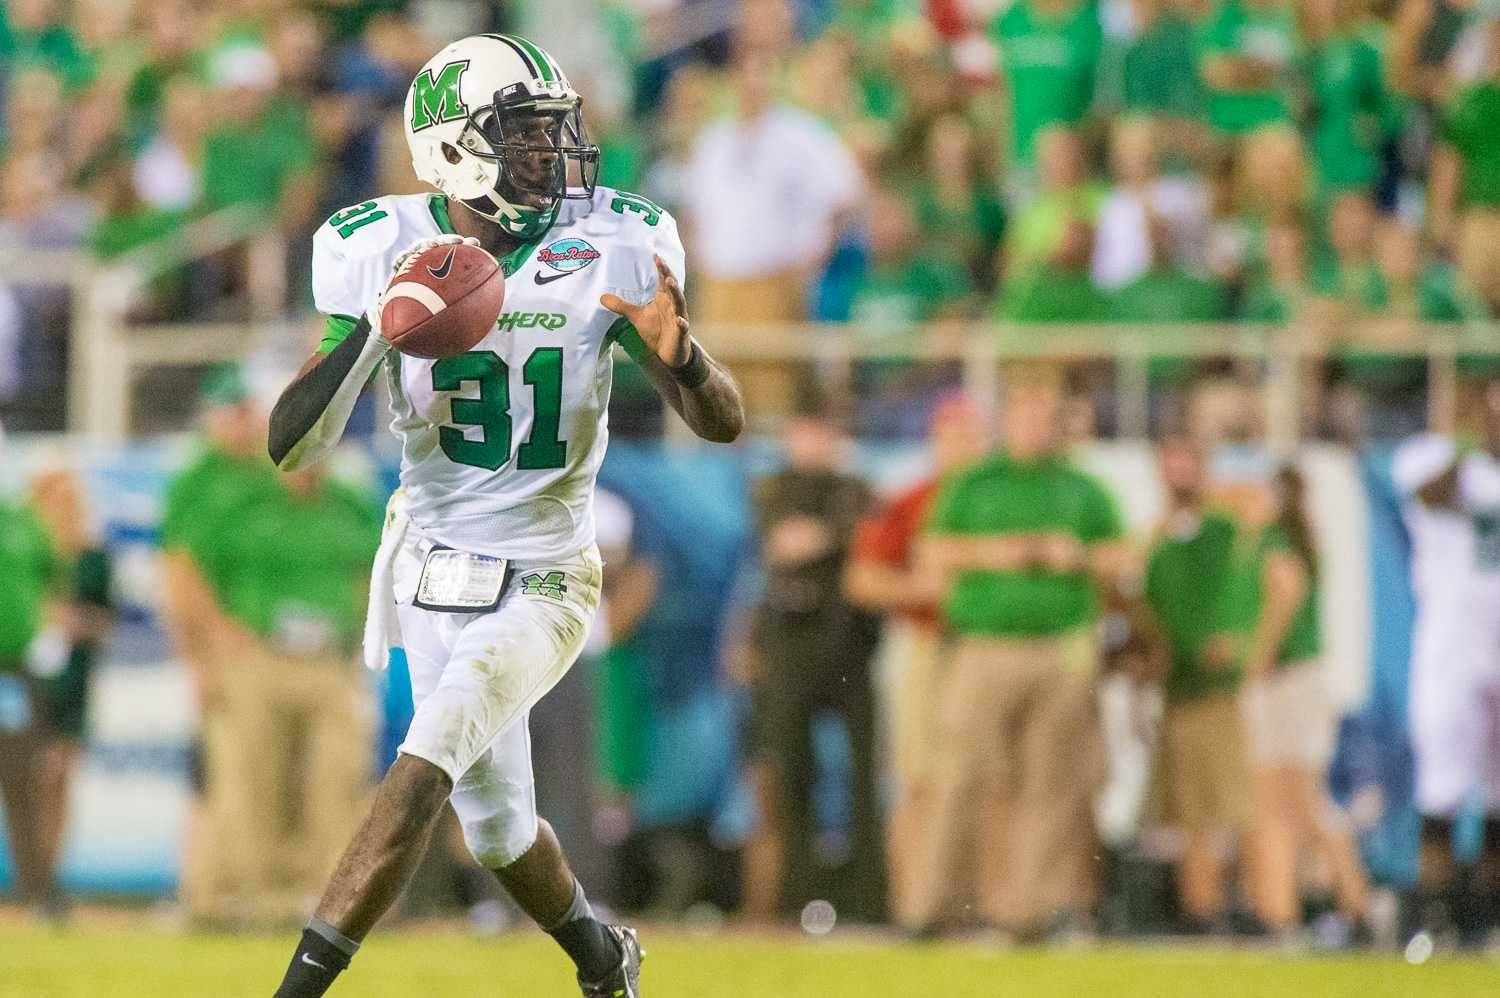 Marshall quarterback Rakeem Cato (31) looks for an open receiver in the fourth quarter of play.  Cato, wearing 31 to honor injured teammate Evan McKelvey, finished the game with 281 yards and three touchdowns.